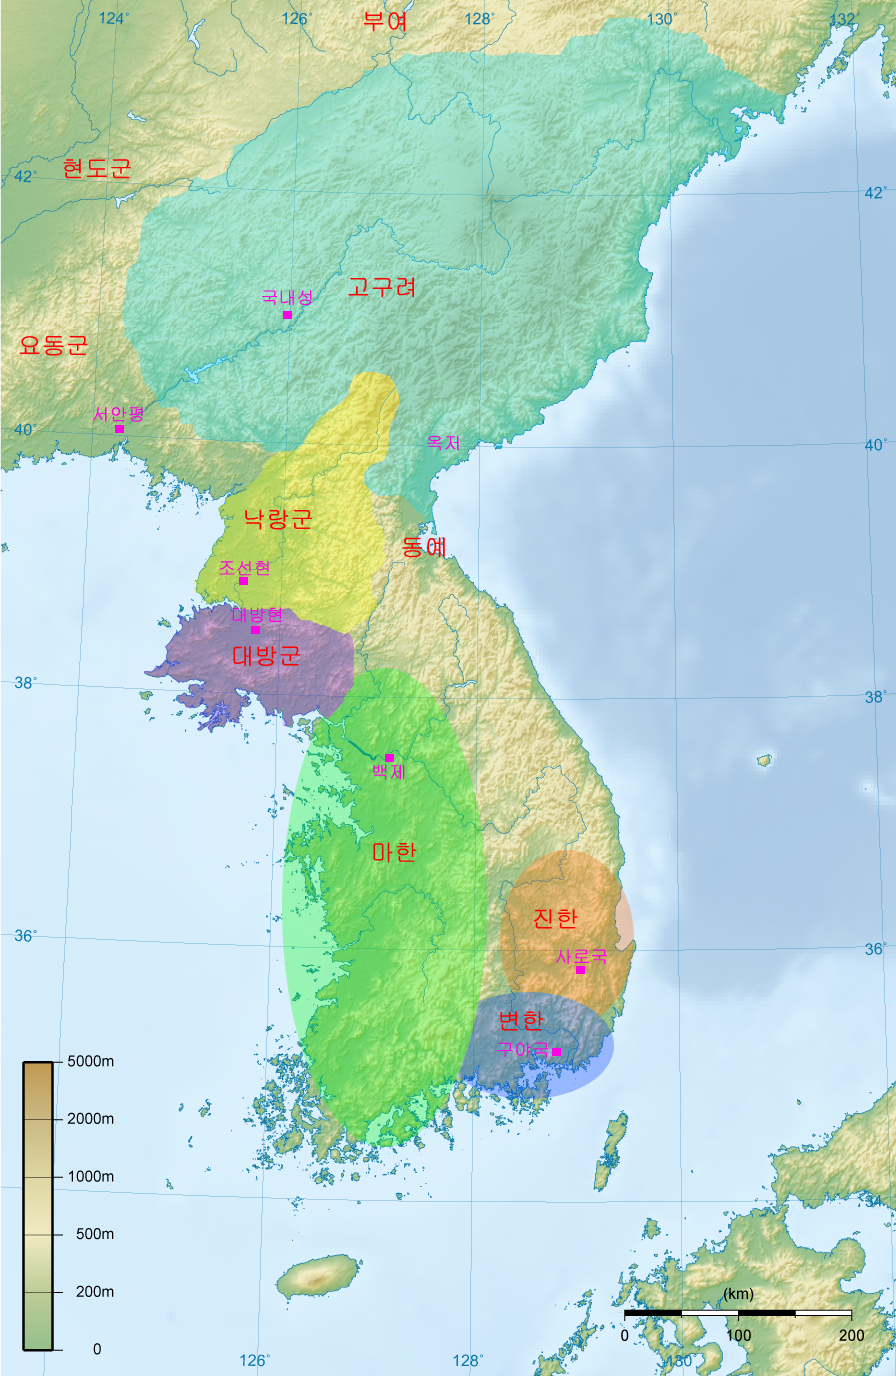 https://upload.wikimedia.org/wikipedia/commons/6/6d/Hangunhyeon_Early_CE_3rd_Century.png